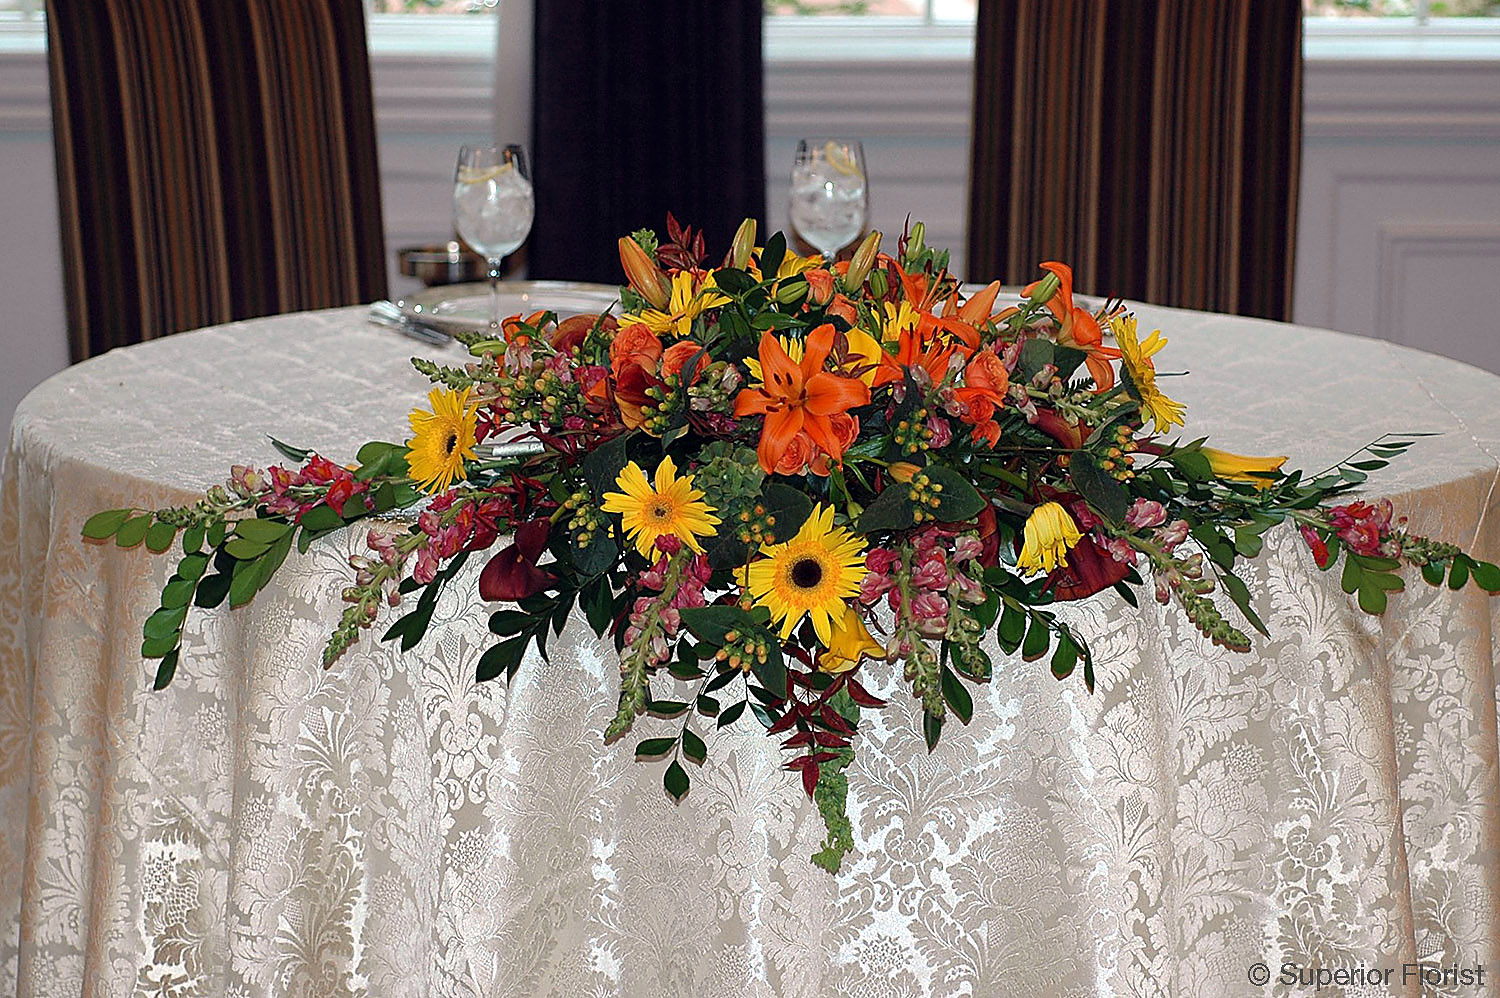 Superior Florist – Sweetheart Tables: Draping arrangement of autumn colored flowers.